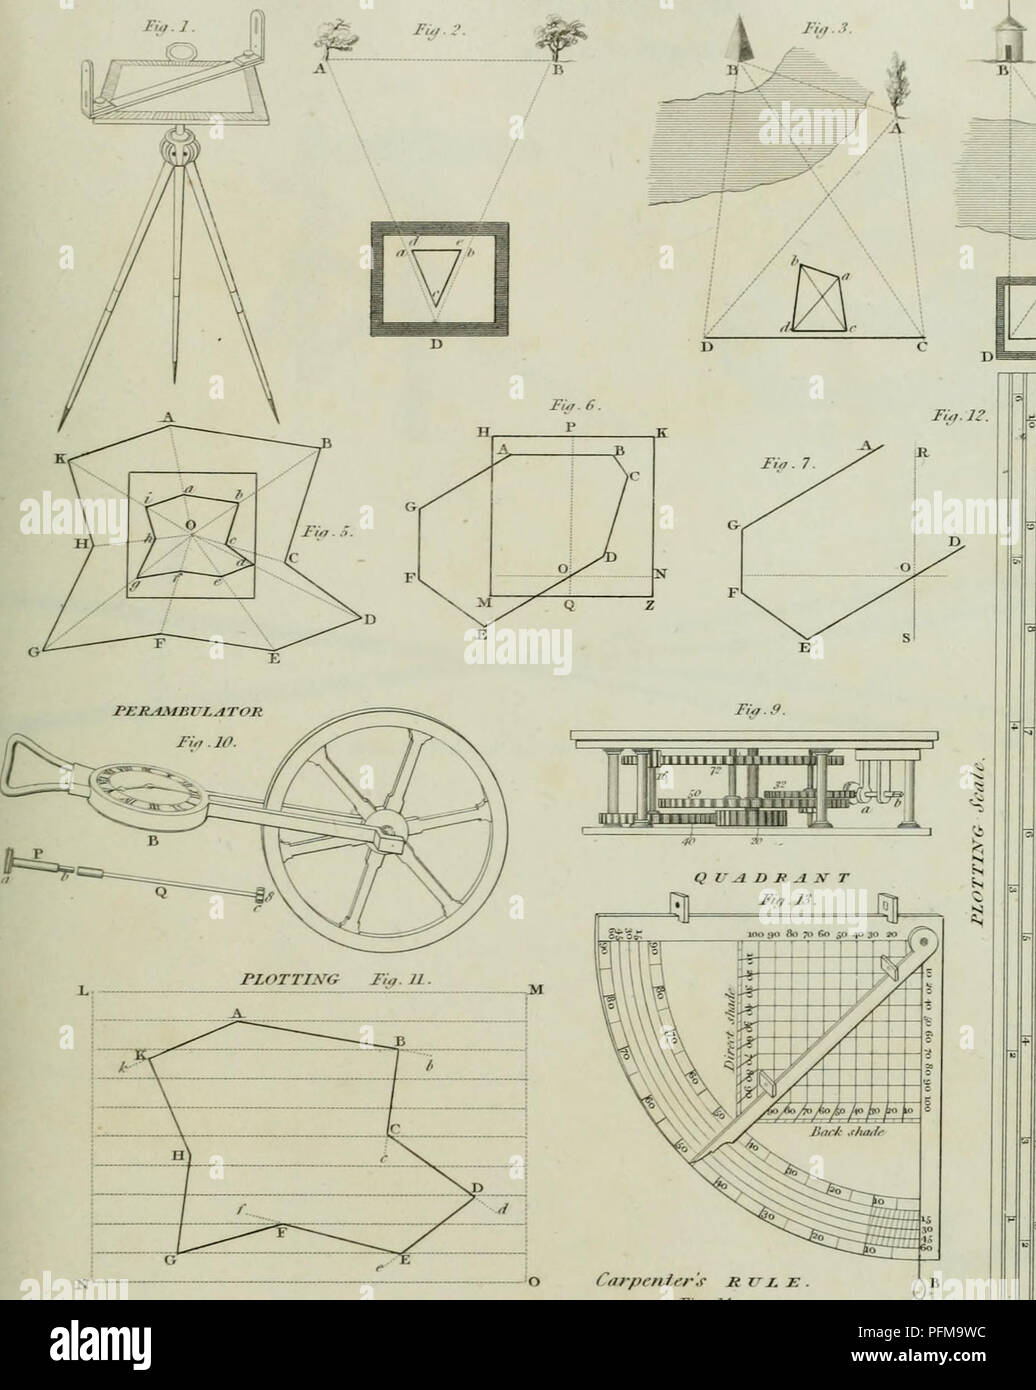 Sx 4 Stock Photos Images Alamy Acura Kes Diagram The Cyclopaedia Or Universal Dictionary Of Arts Sciences And Literature